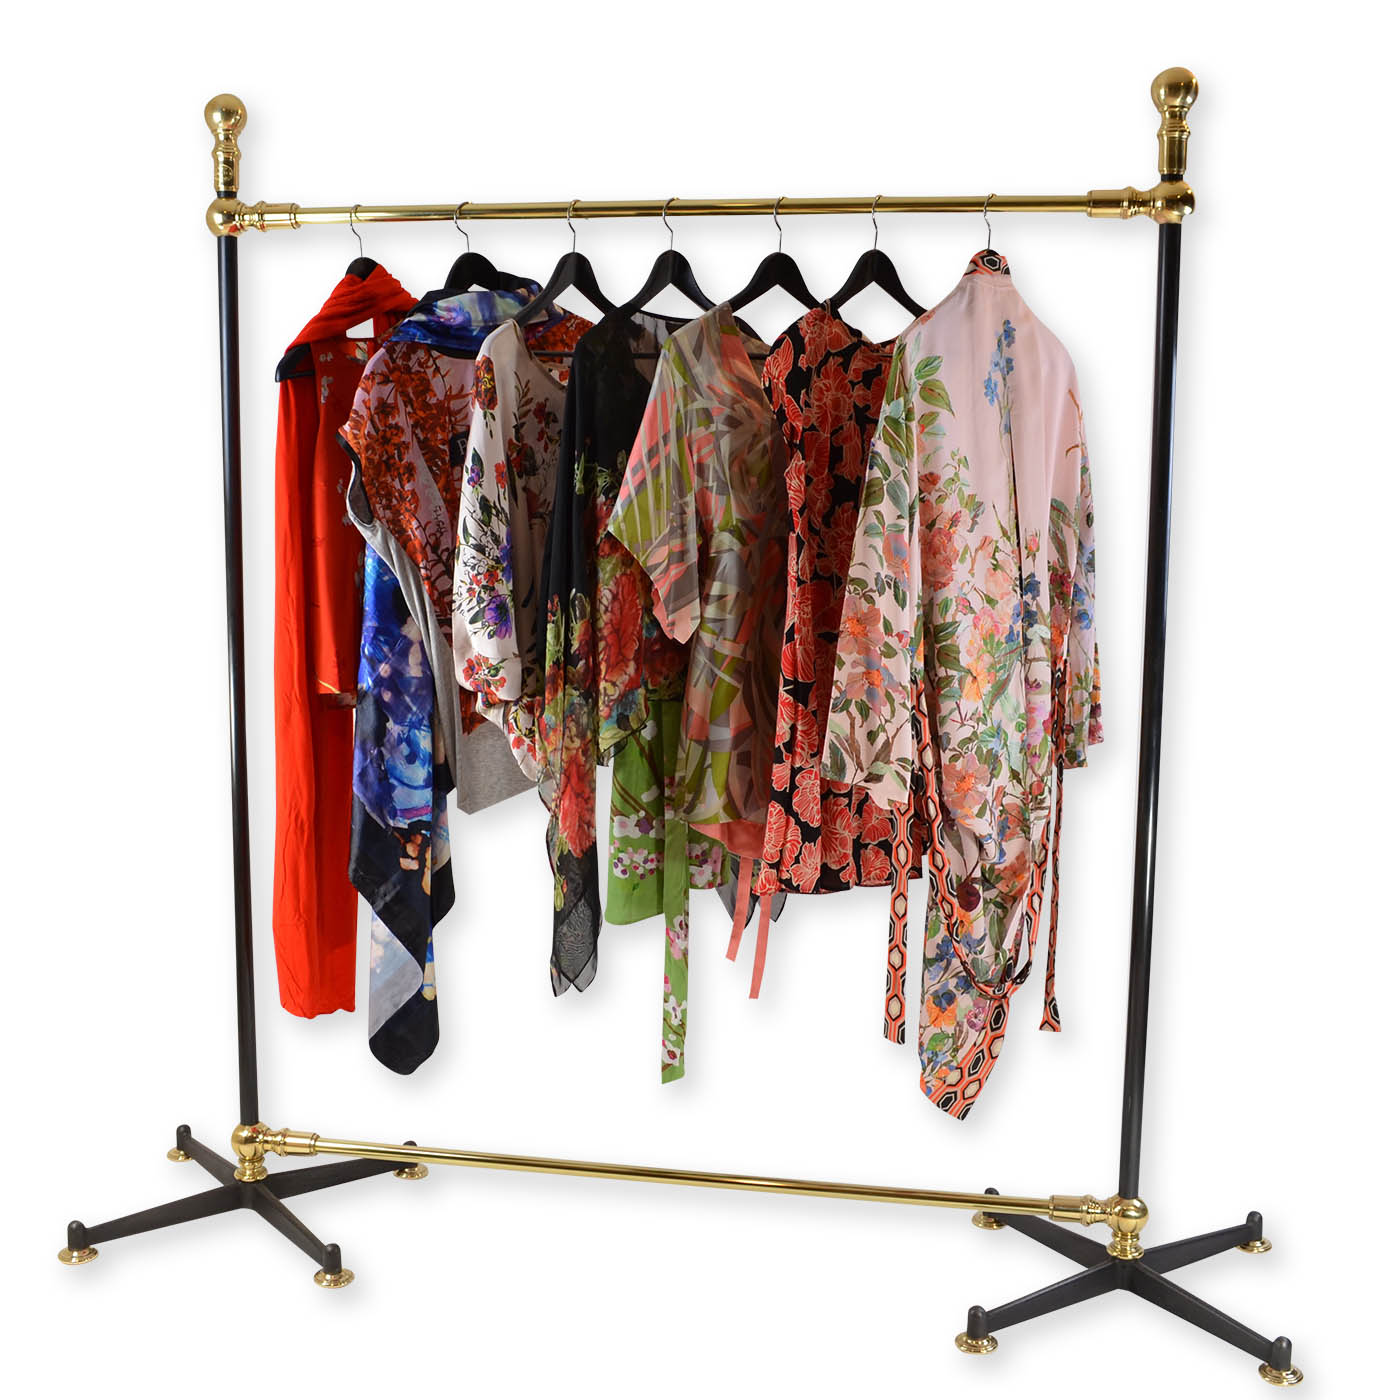 Ready-to-go Designs - The Oxford, Freestanding Clothes Rail